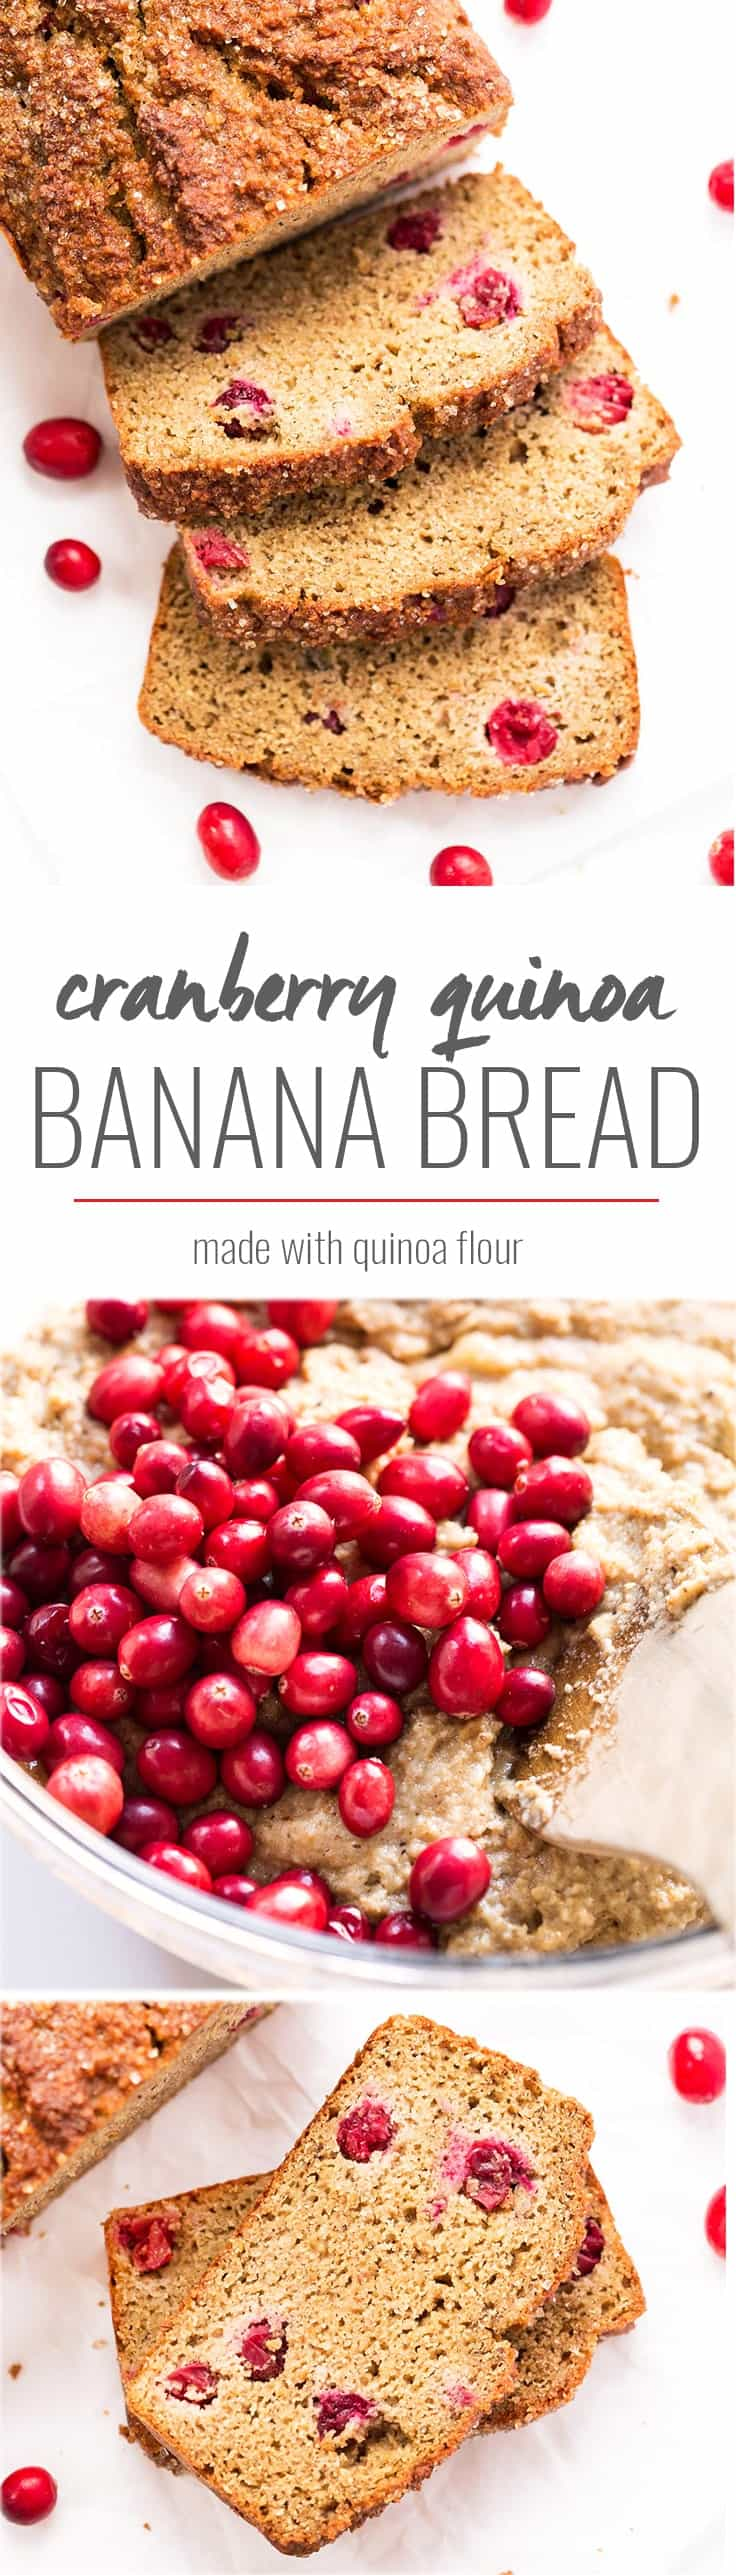 This AMAZING cranberry quinoa banana bread is made with only healthy ingredients and is free from gluten, dairy, refined sugar AND uses only 1 tablespoon of oil!